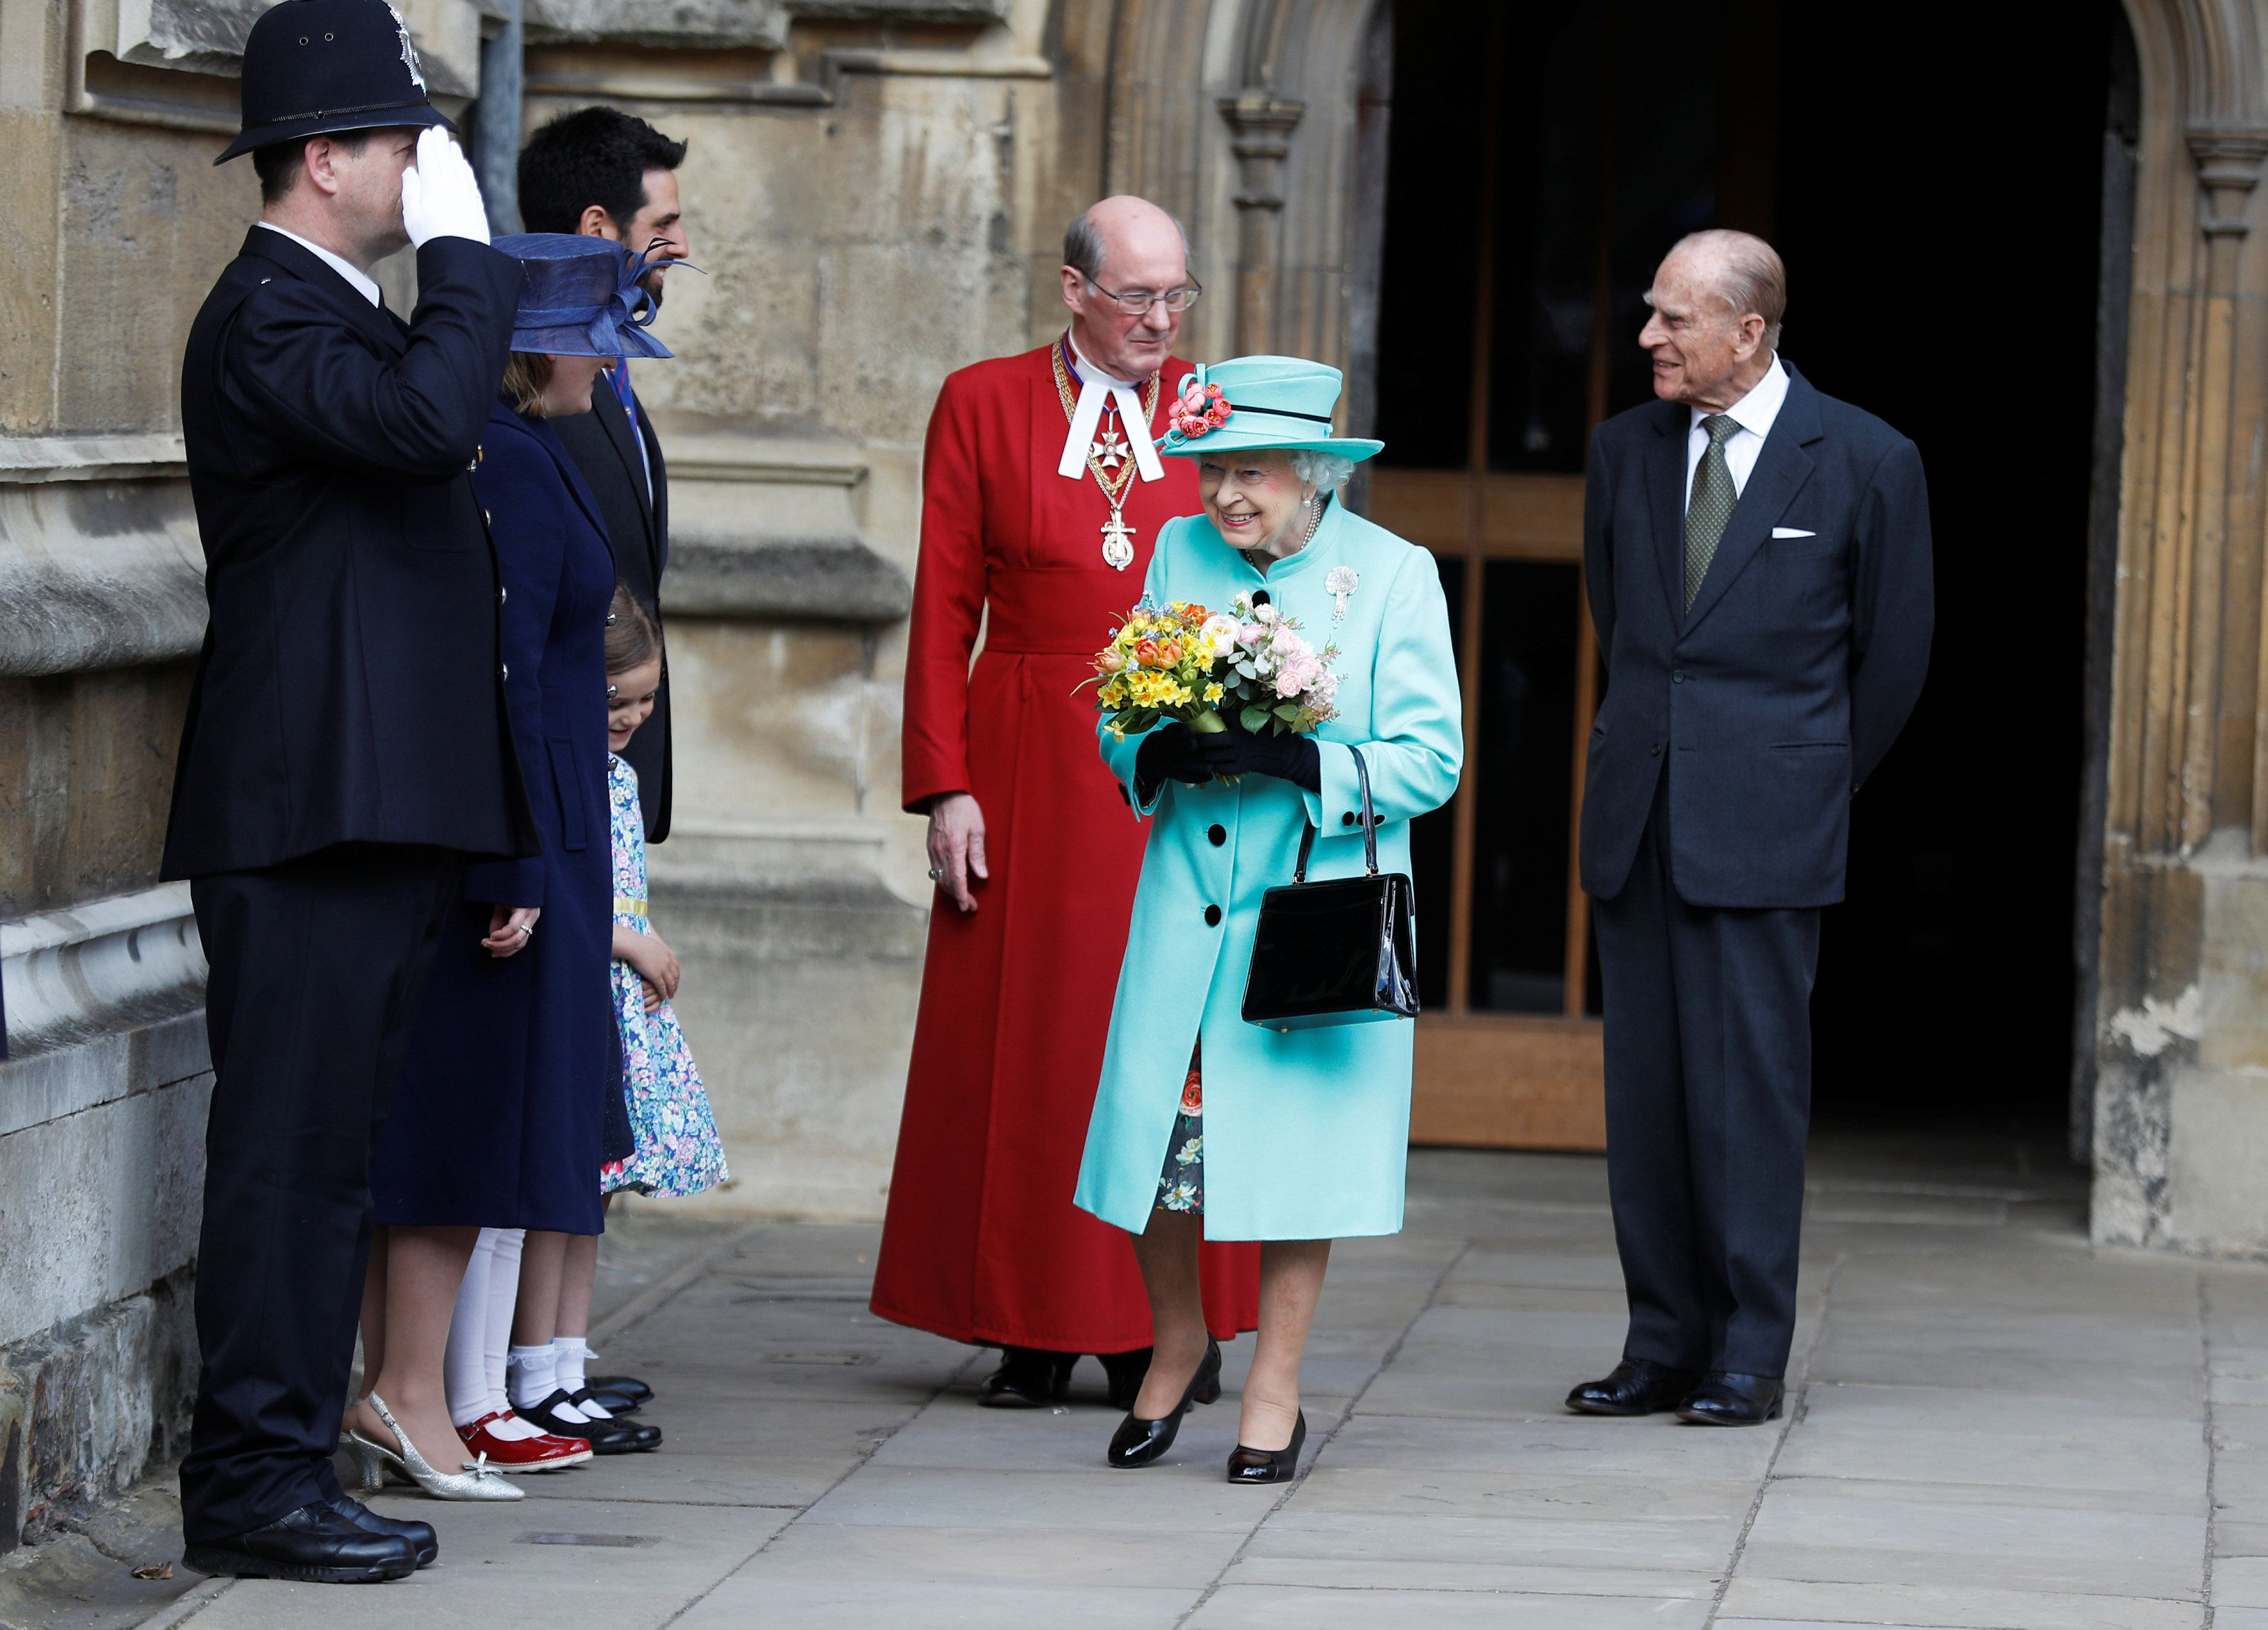 What Is The Buckingham Palace Announcement? We Assess Possible